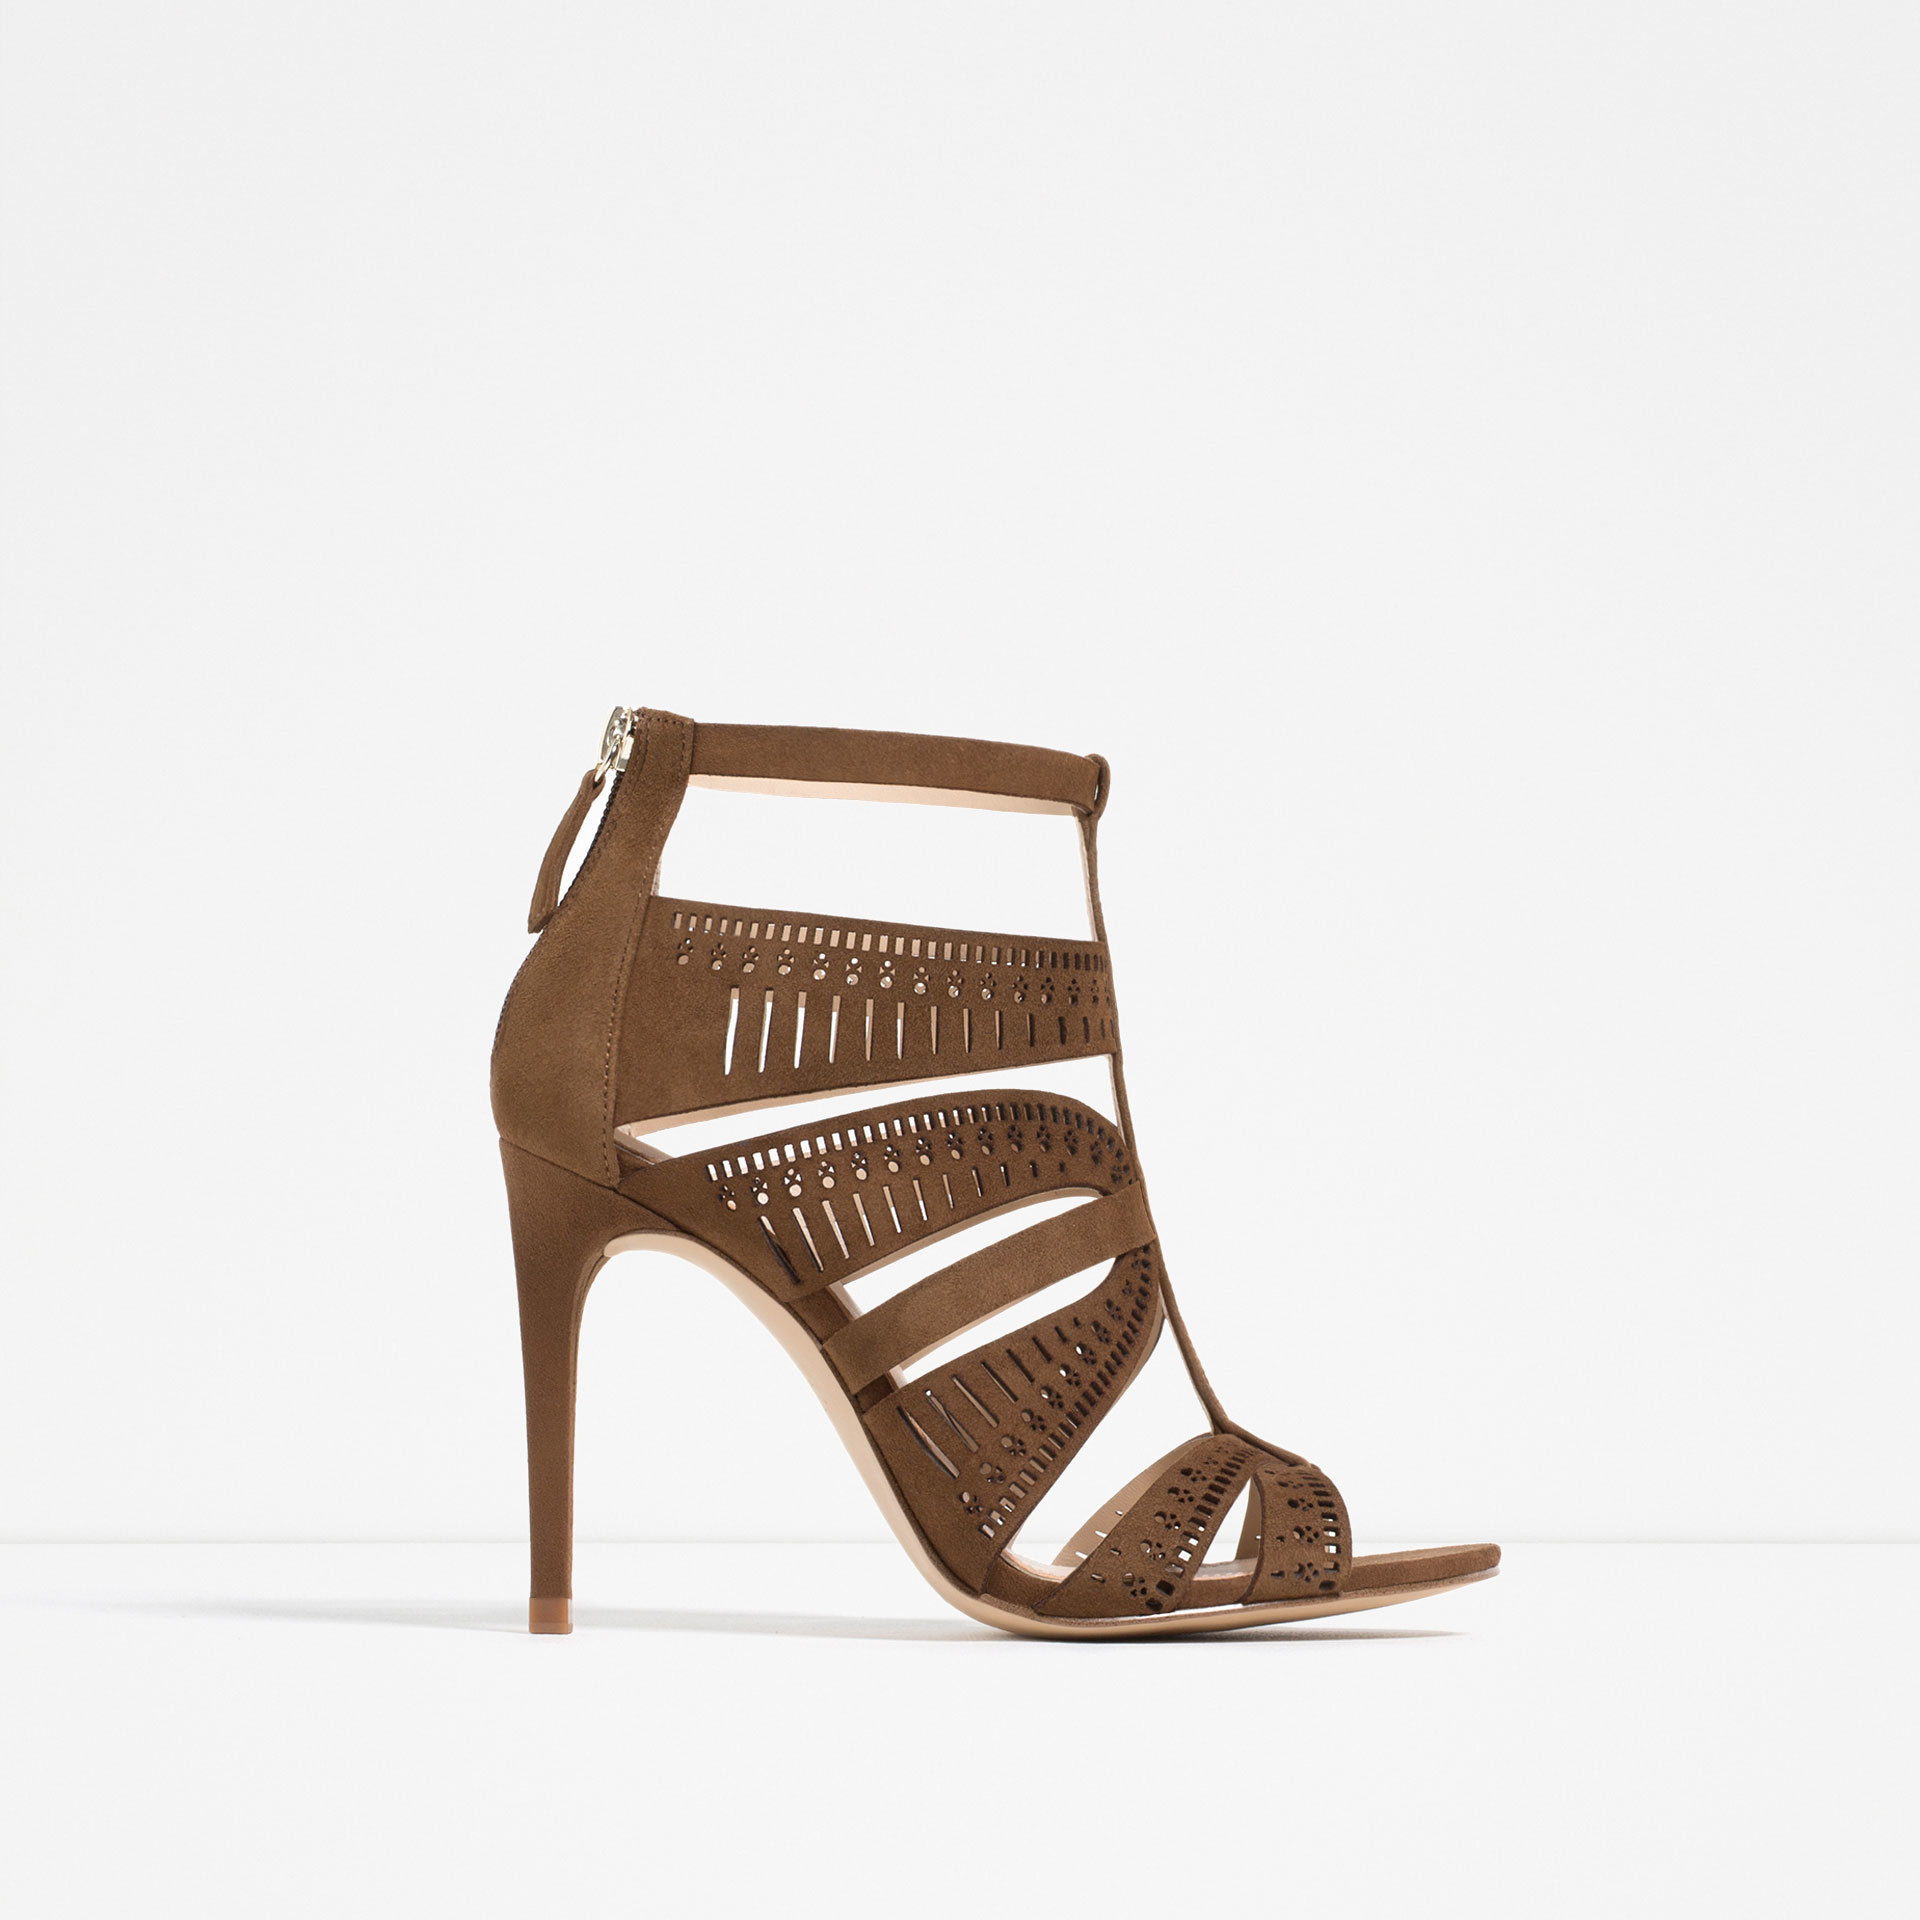 Zara Leather Strappy High Heel Sandals in Natural | Lyst